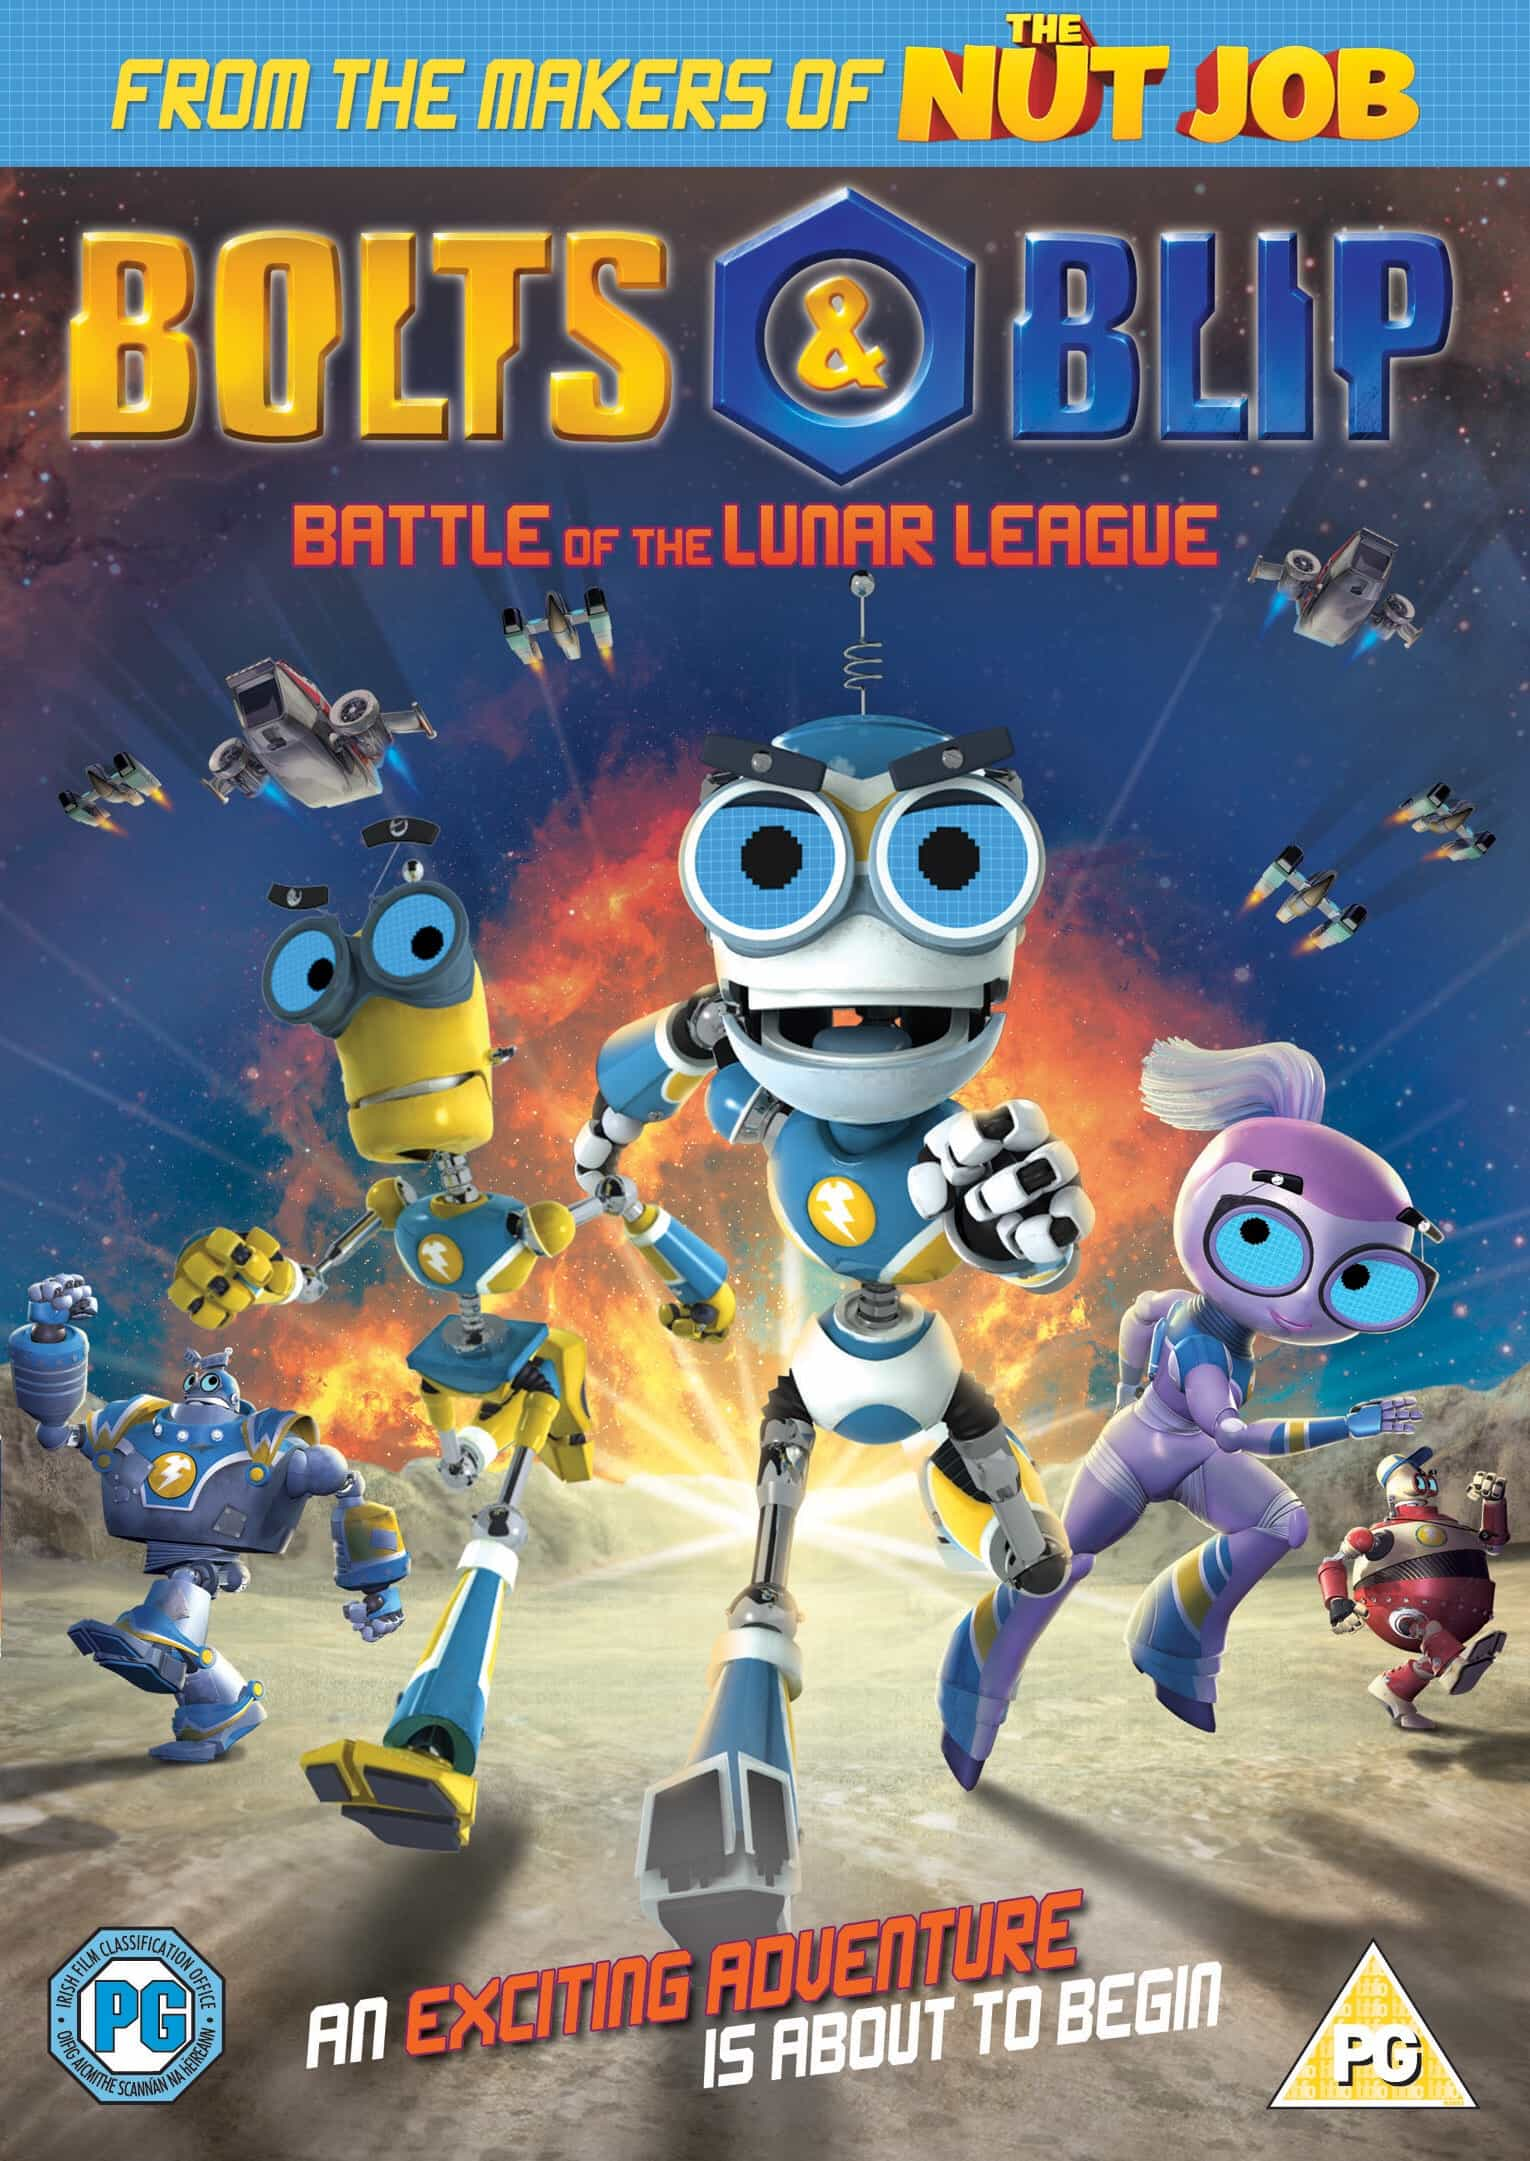 [Giveaway] Bolts and Blip DVD